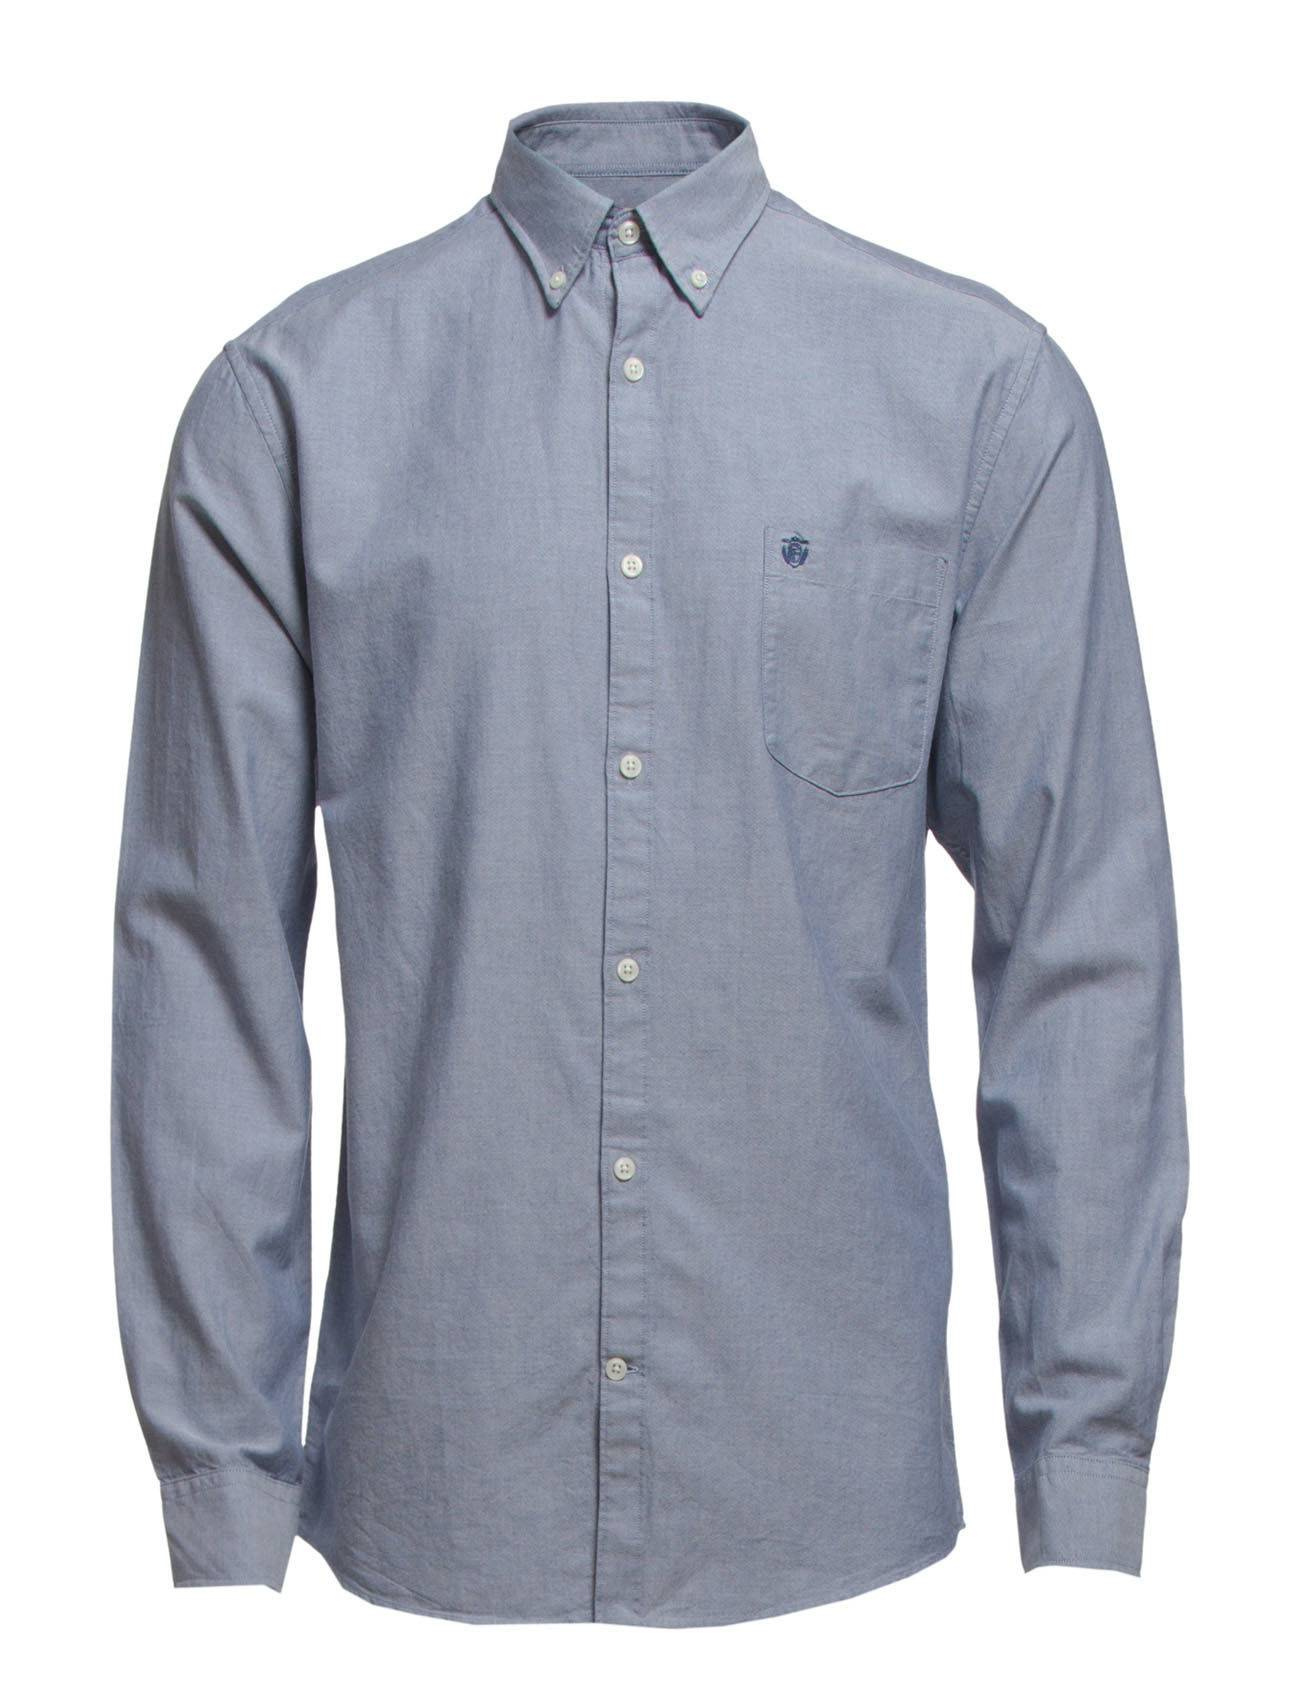 Selected Homme Collect Shirt Ls R Noos H Paita Bisnes Sininen Selected Homme